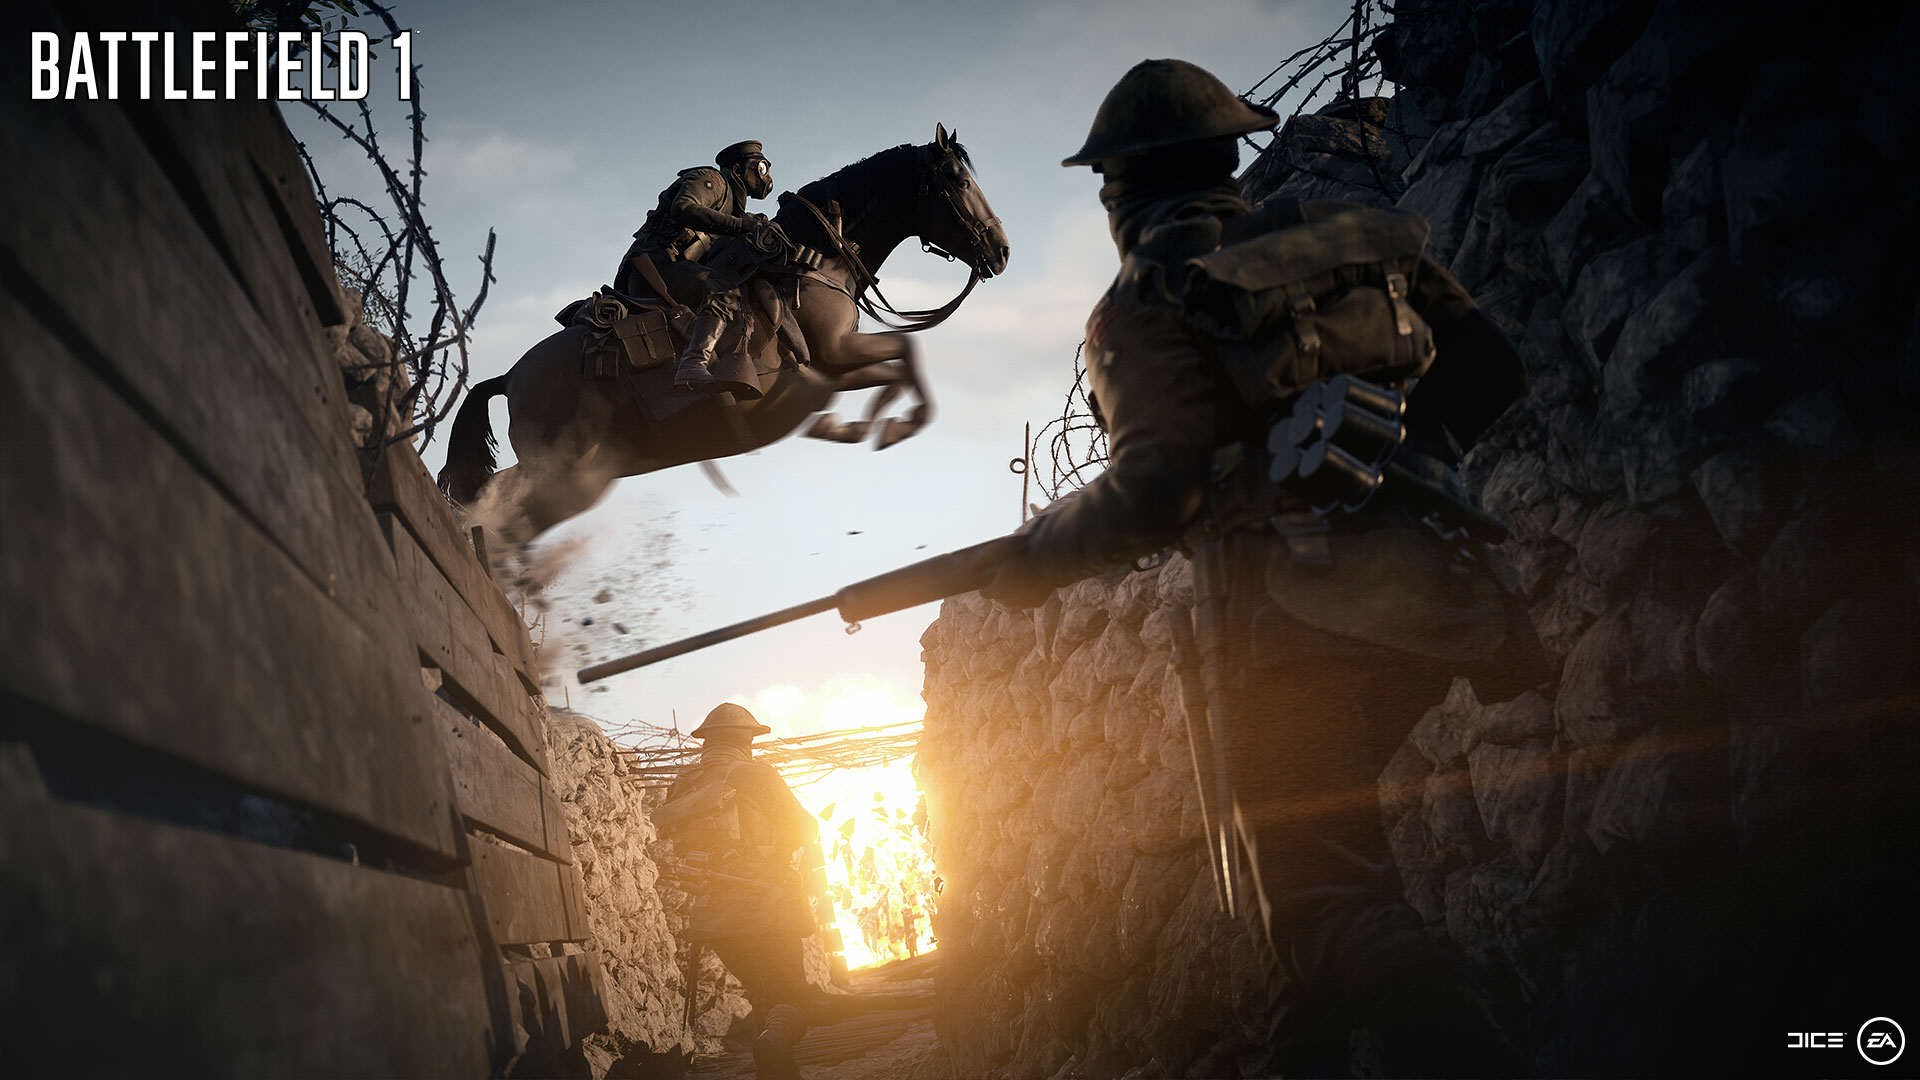 Battlefield 1 Gets Epic New Trailer And Gameplay Features BF1 EA PLAY 06 HORSES WM